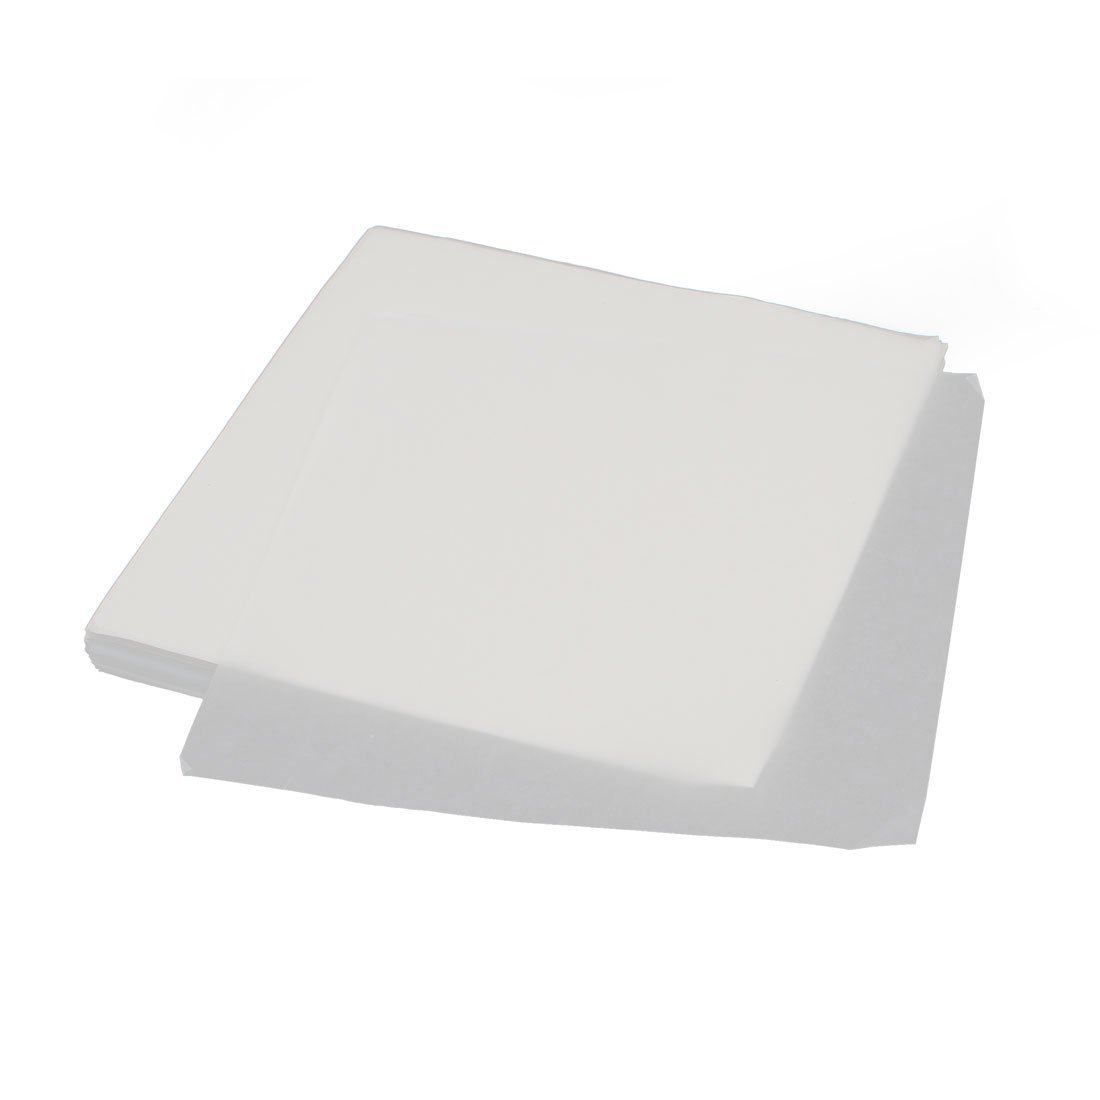 Laboratory Analytical Square Shaped Weighing Paper 150 x 150mm 500Pcs DealMux DLM-B00XBG23F0